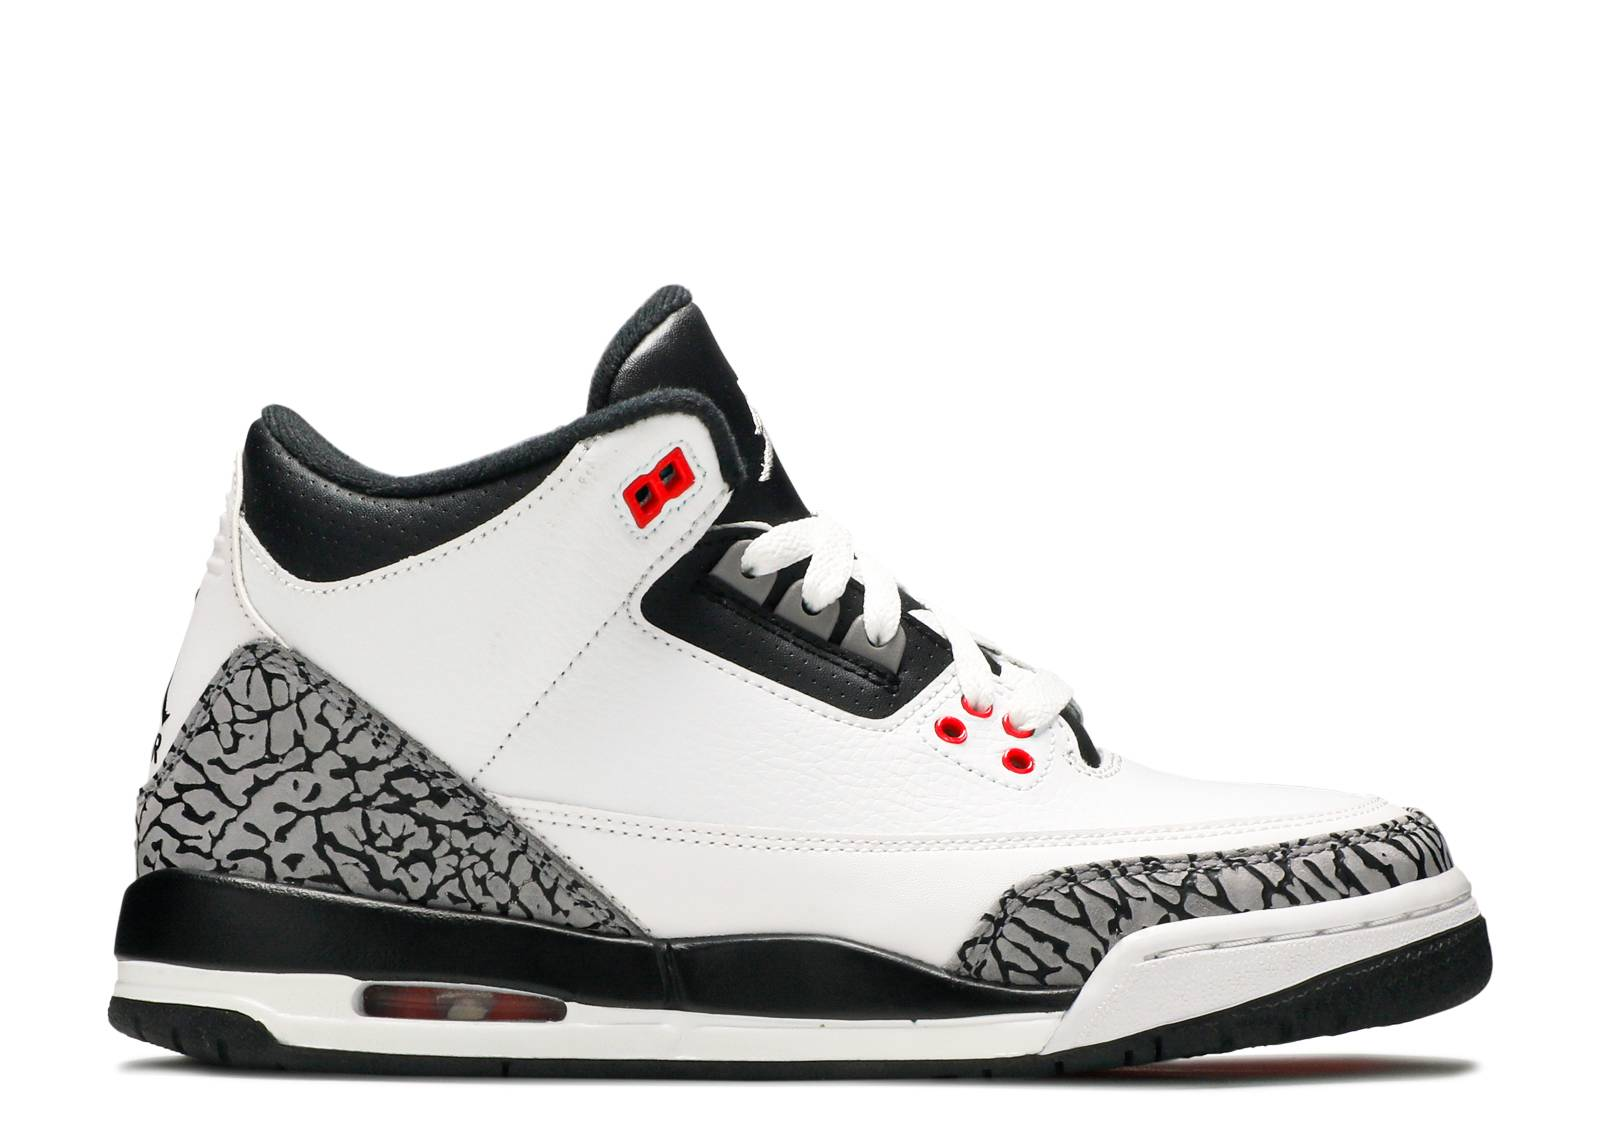 half off 03ef0 0c262 Air Jordan 3 Retro BG 'Infrared 23'